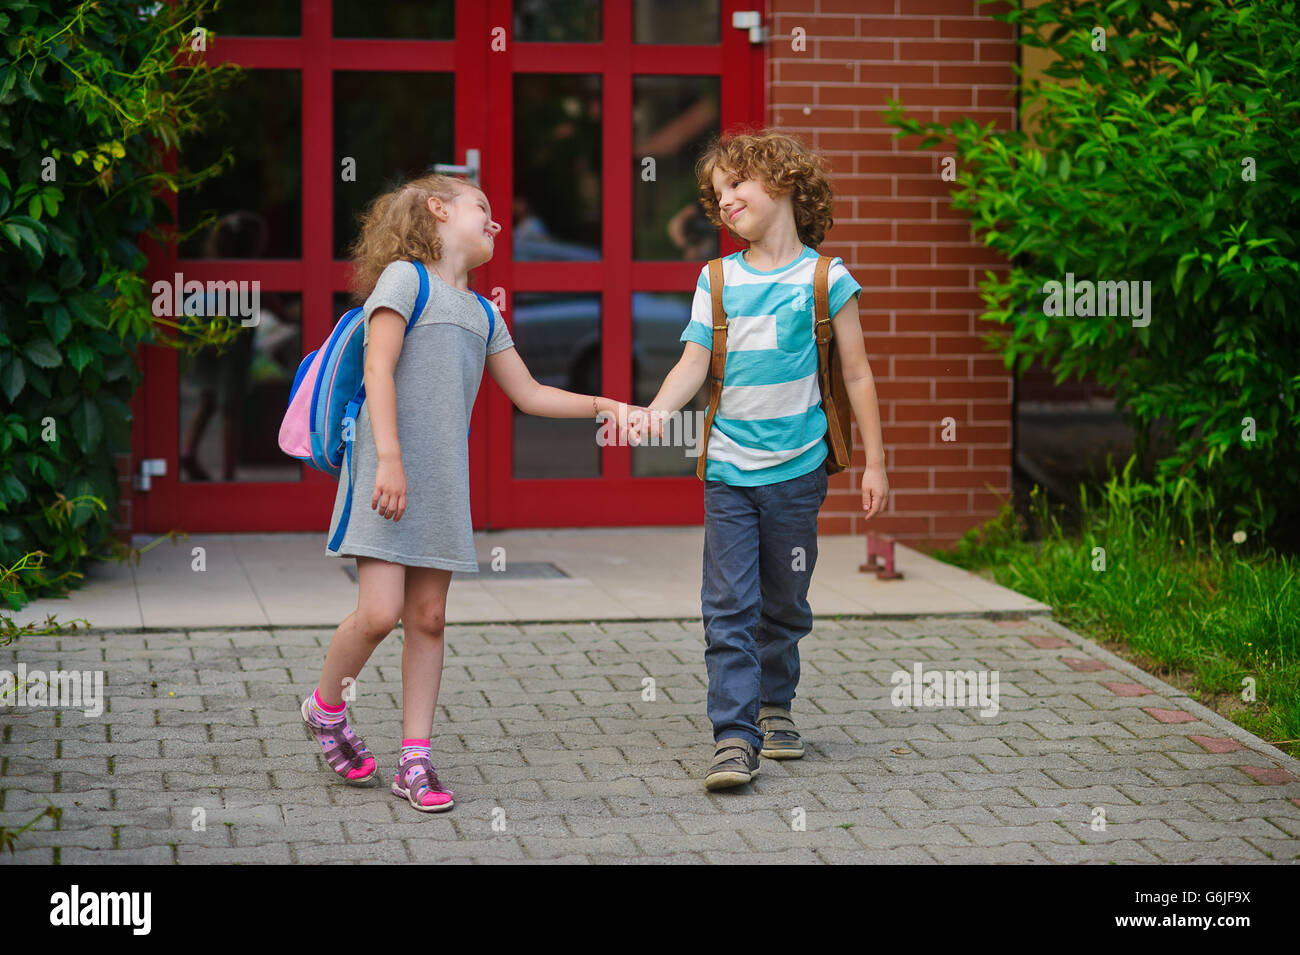 Little school students go on a schoolyard holding hands. Children with a smile look at each other. Boy and girl. Stock Photo